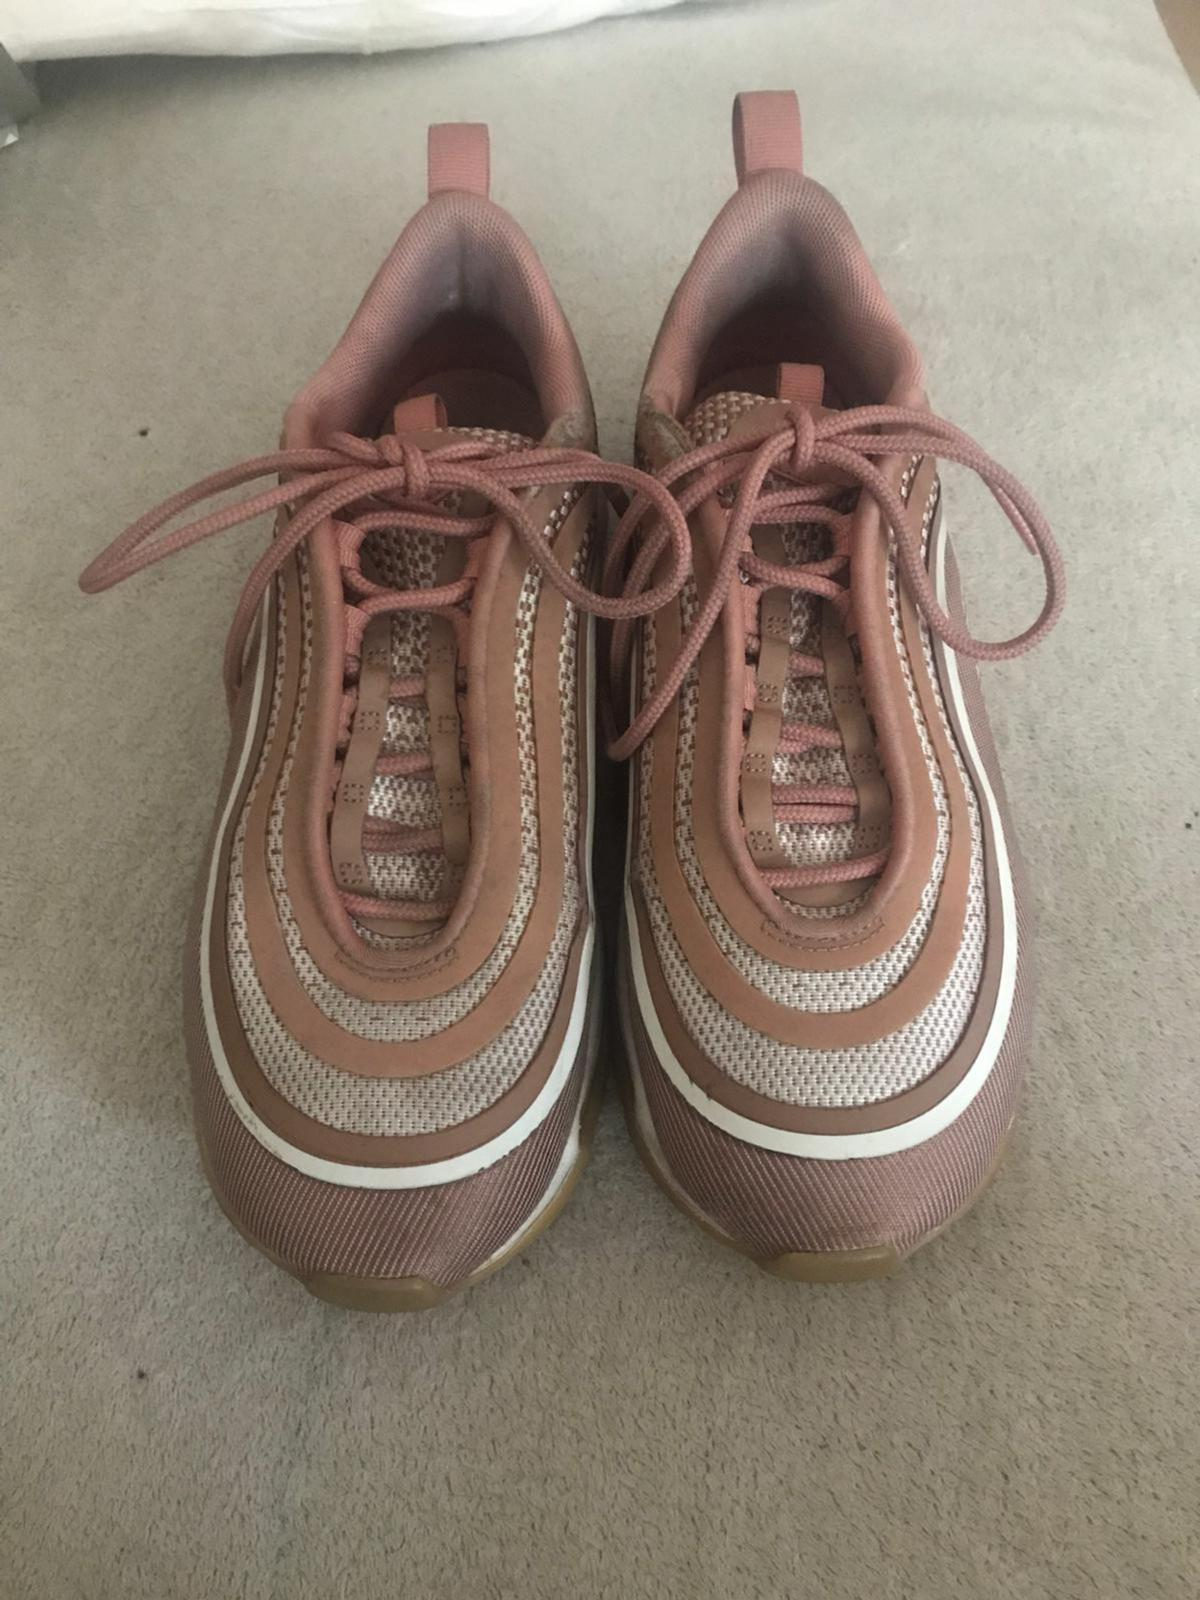 new style get cheap cheapest rosa 97er scalefriends